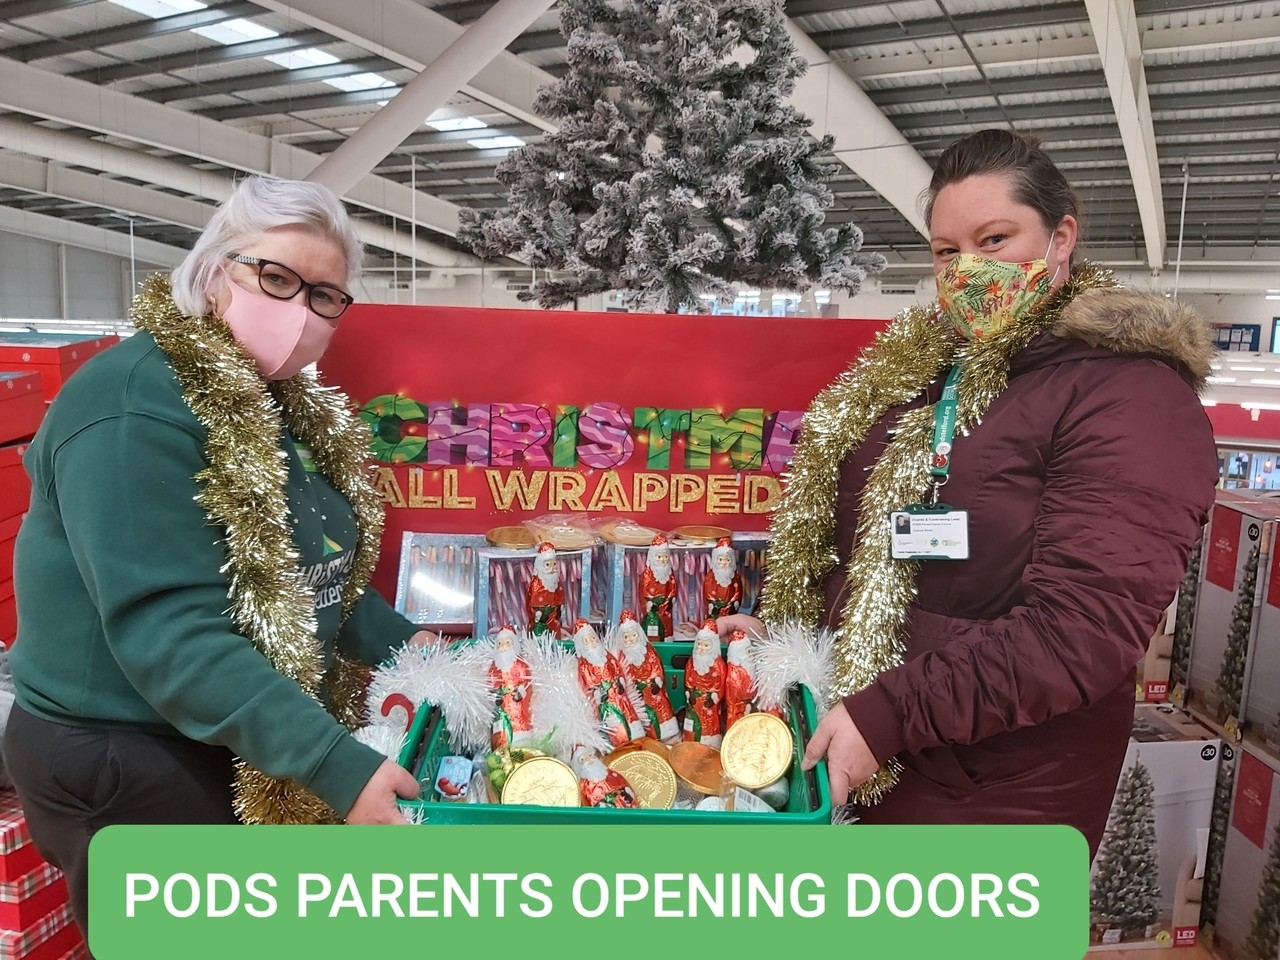 Goody bags forParents Opening Doors | Asda Donnington Wood